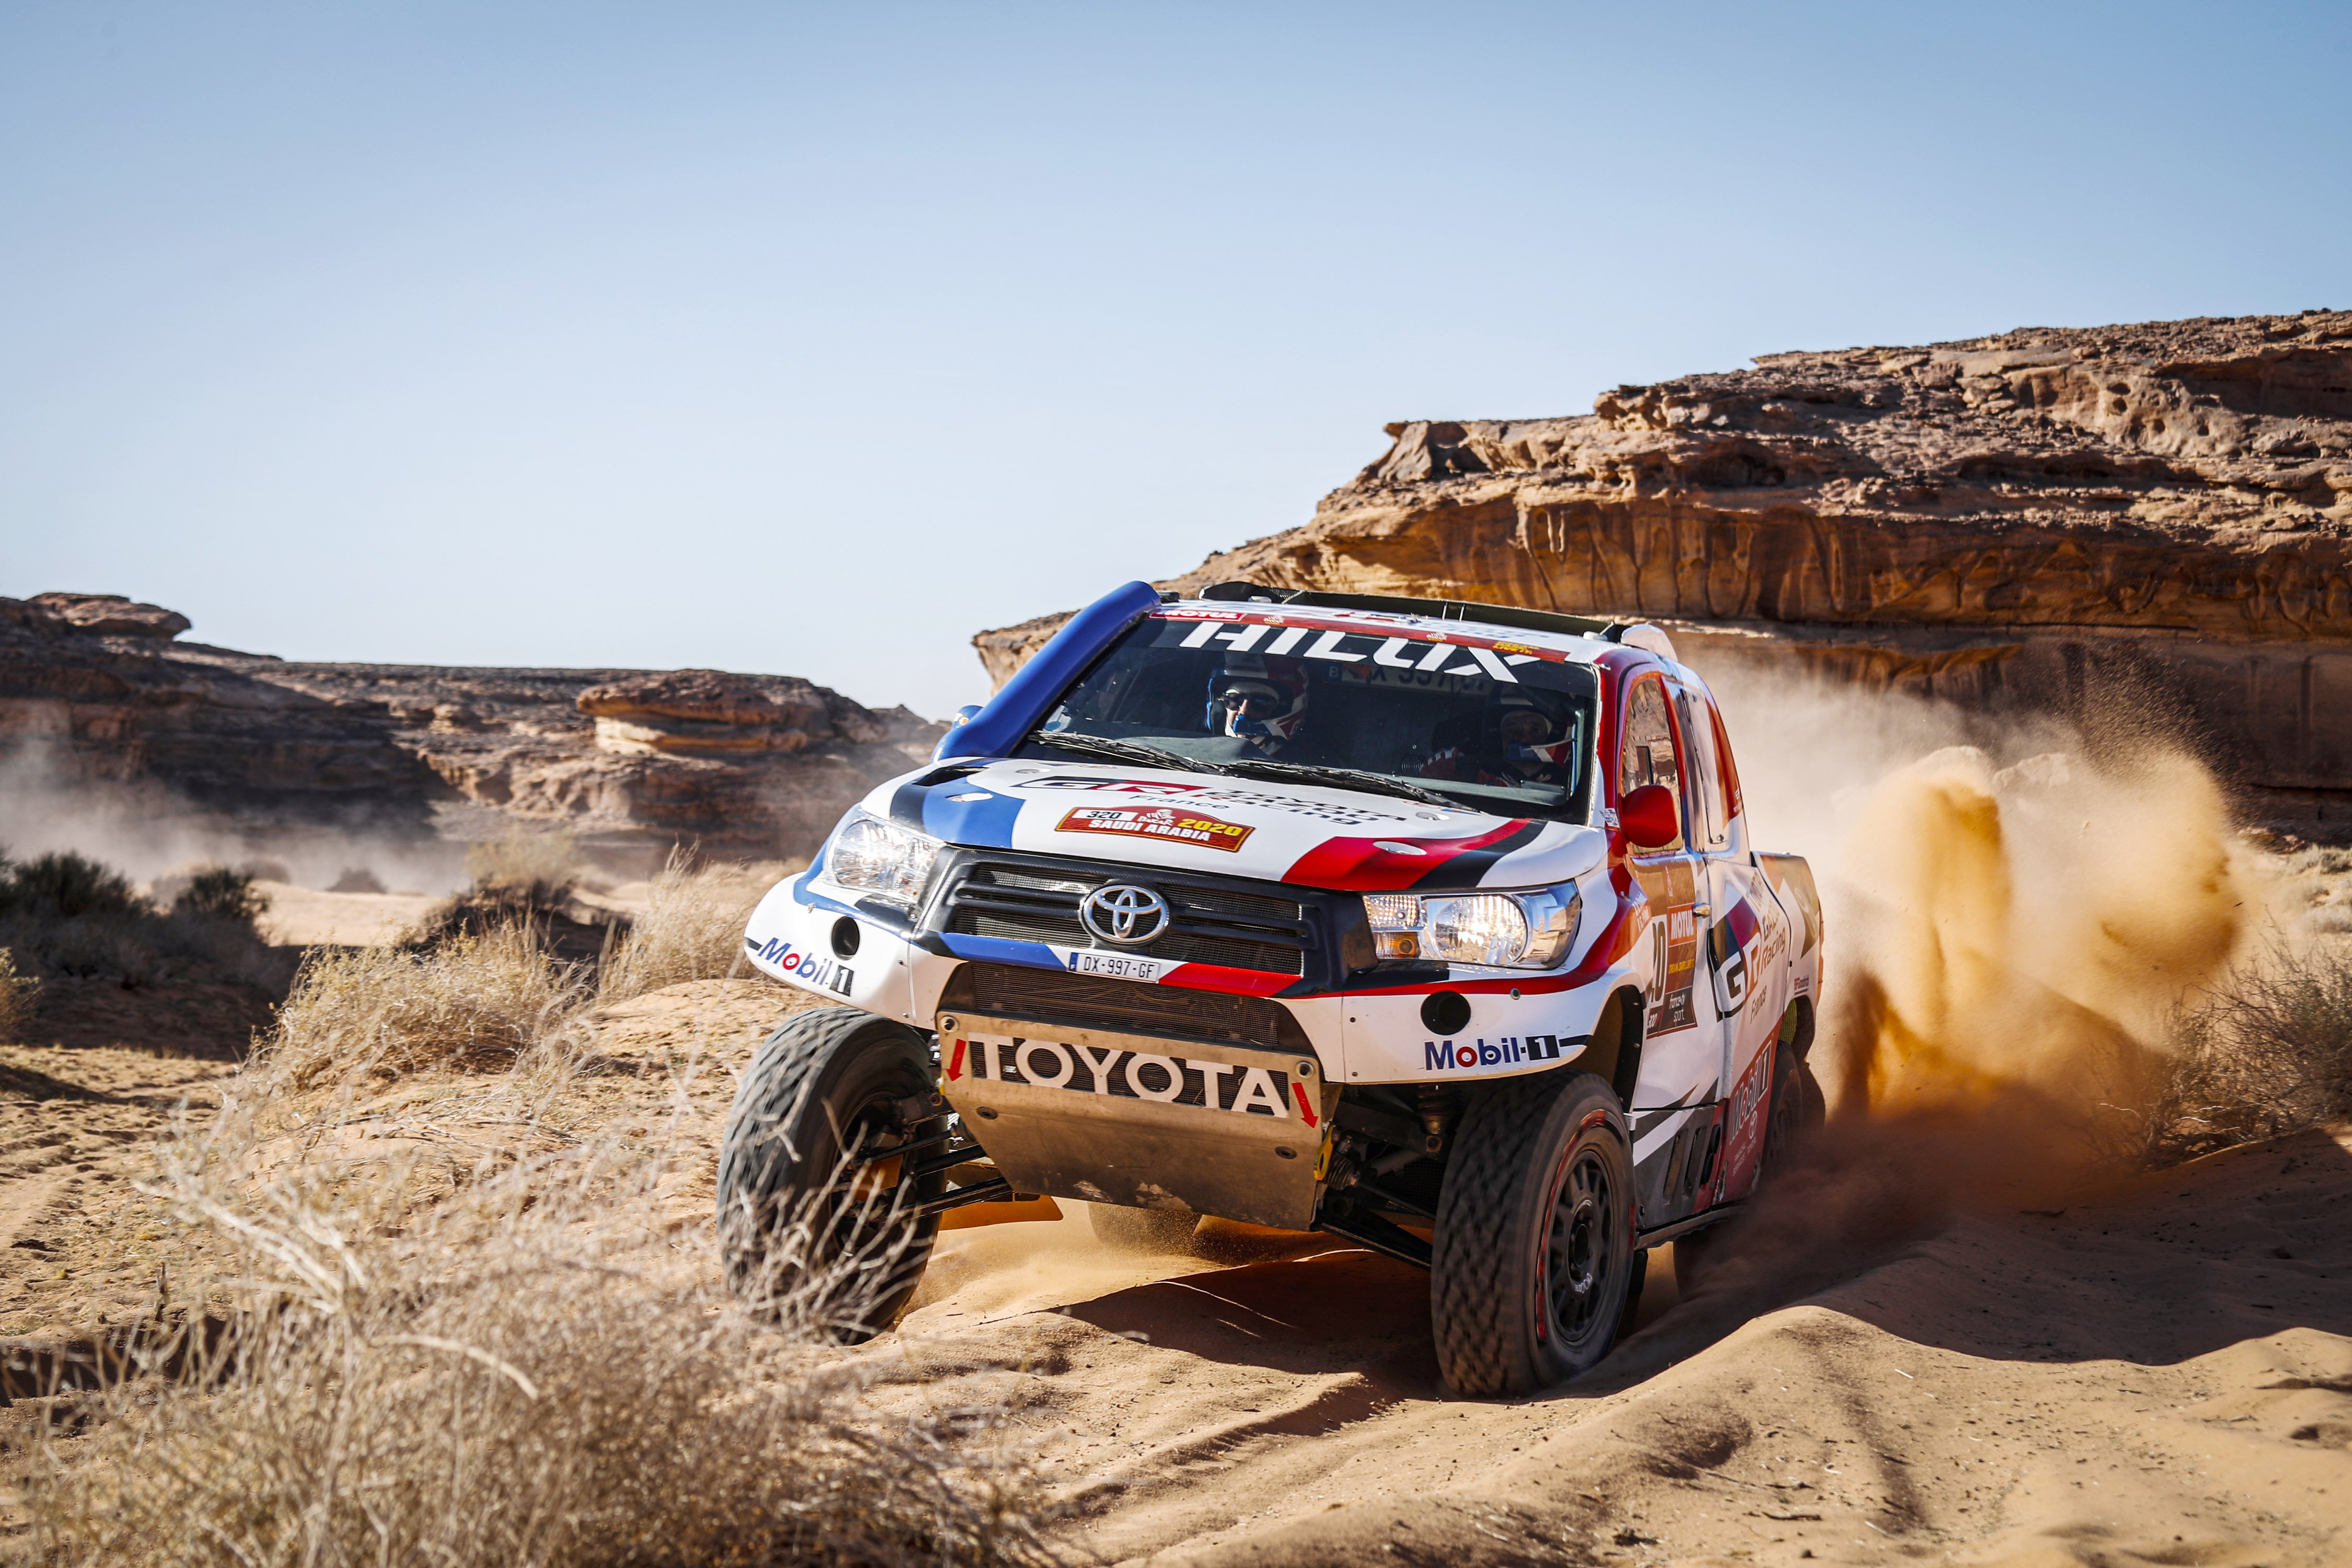 320 Chabot Ronan (fra), Pillot Gilles (fra), Toyota Hilux, Overdrive Toyota, Auto, Car, action during Stage 5 of the Dakar 2020 between Al Ula and Ha'il, 563 km - SS 353 km, in Saudi Arabia, on January 9, 2020 - Photo Francois Flamand / DPPI